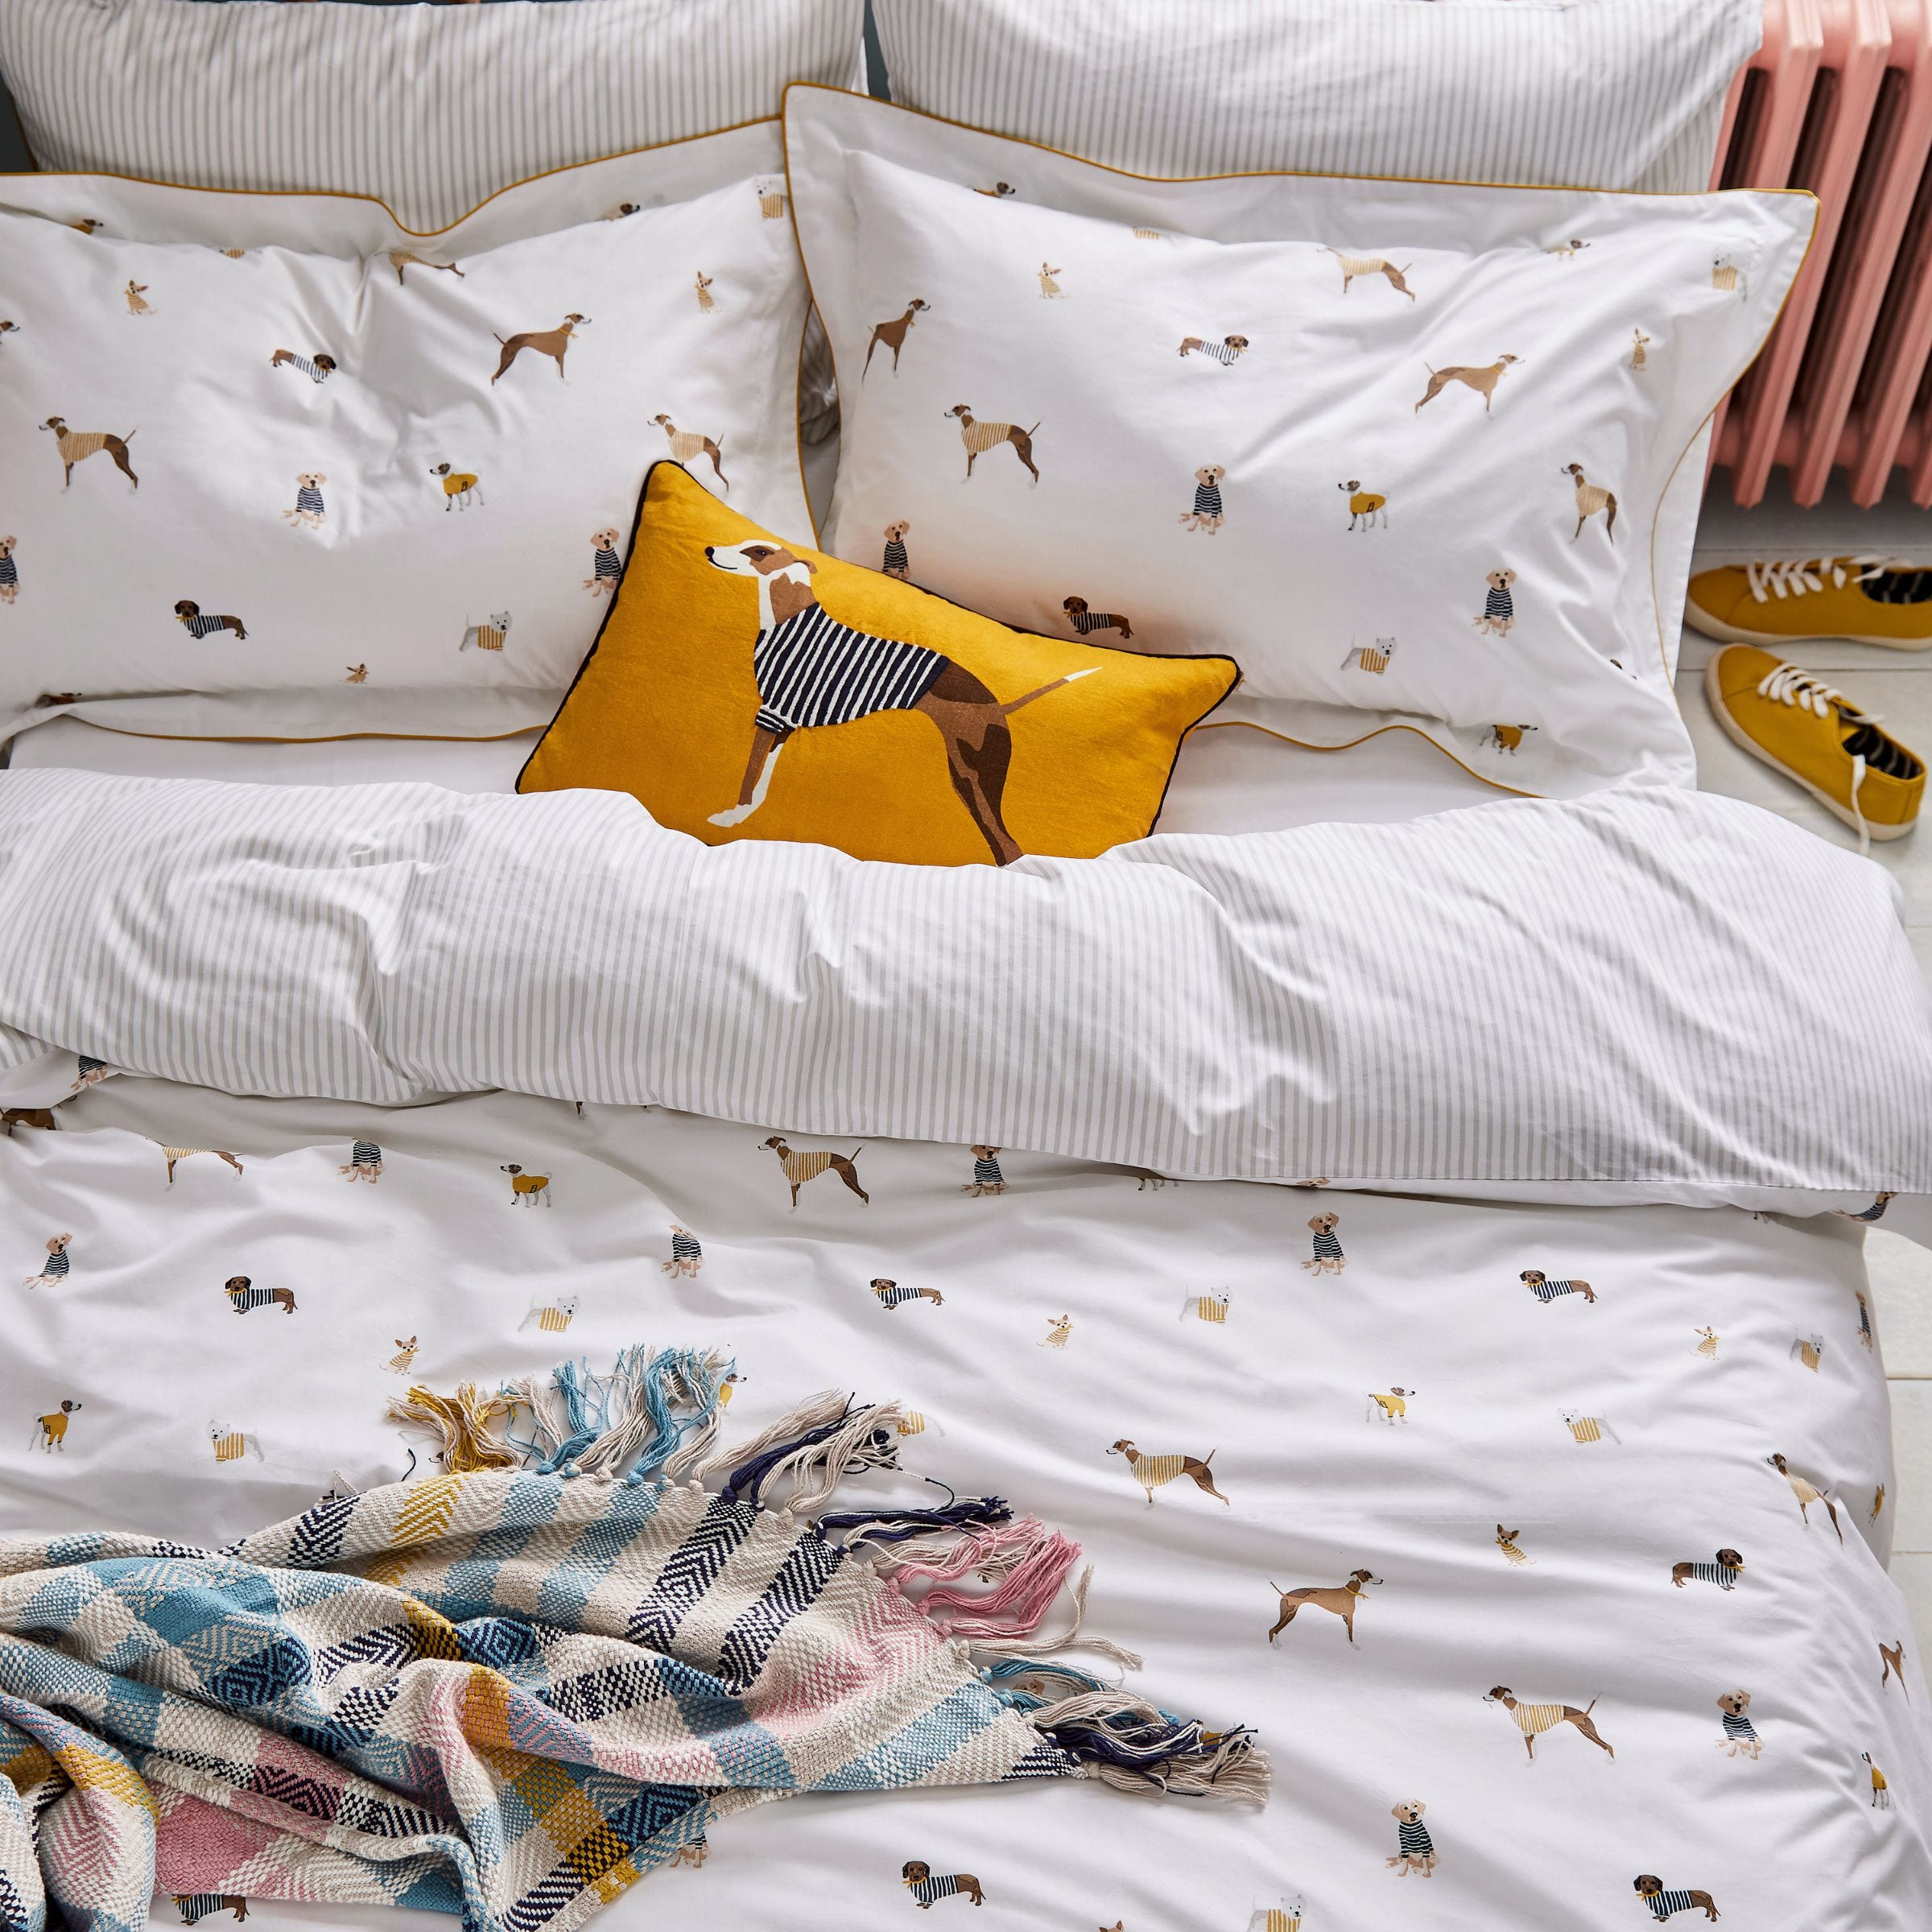 Joules Joules Harbour Dogs 100% Cotton Duvet Cover and Pillowcase Set White, Blue and Yellow 140x200cm and 48x76cm